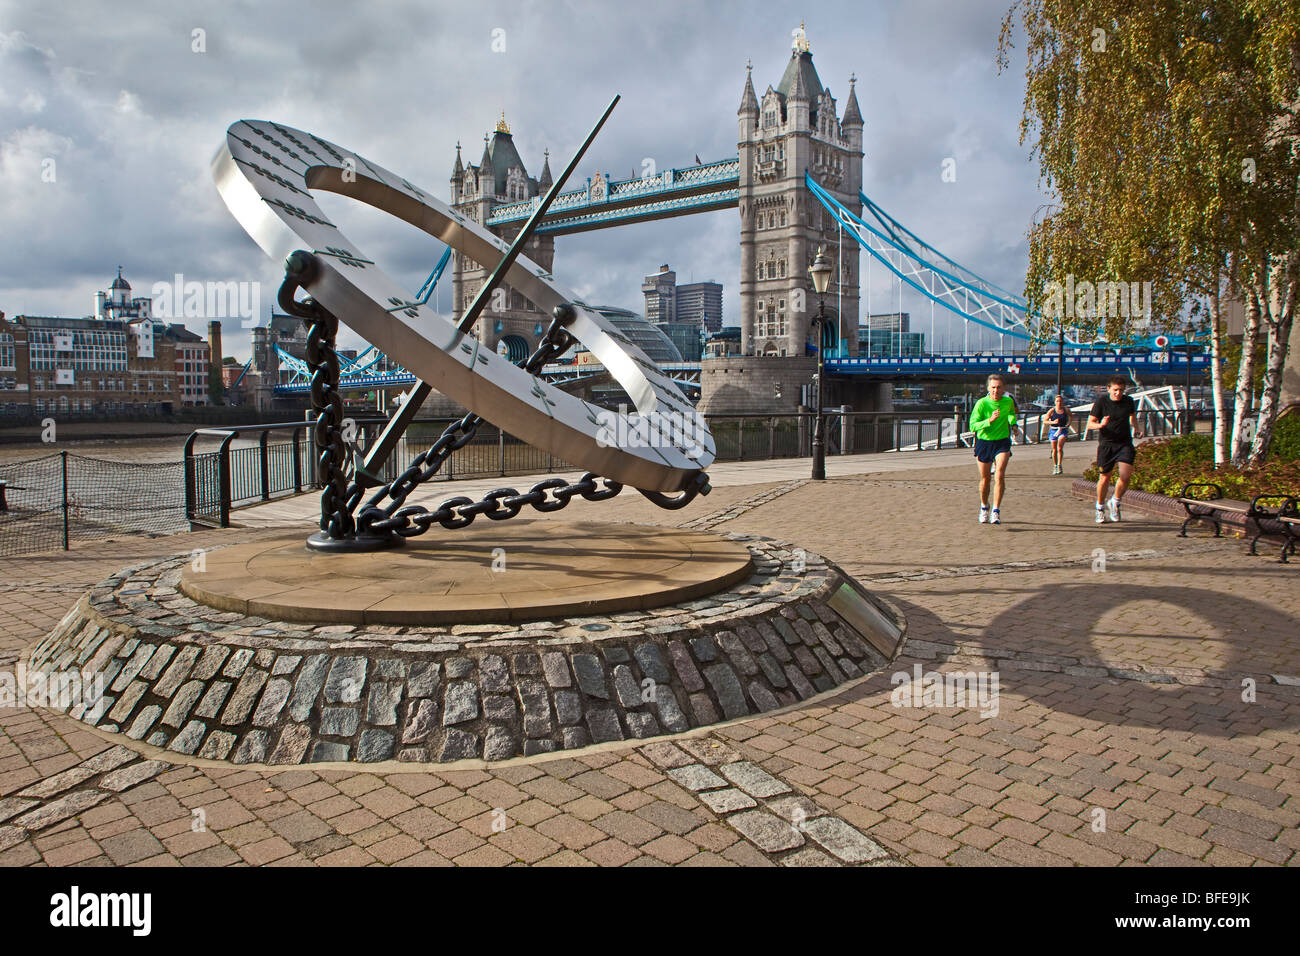 London ; St Katharine's Dock ; Sundial by Wendy Taylor, 1973 ; October 2OO9 - Stock Image